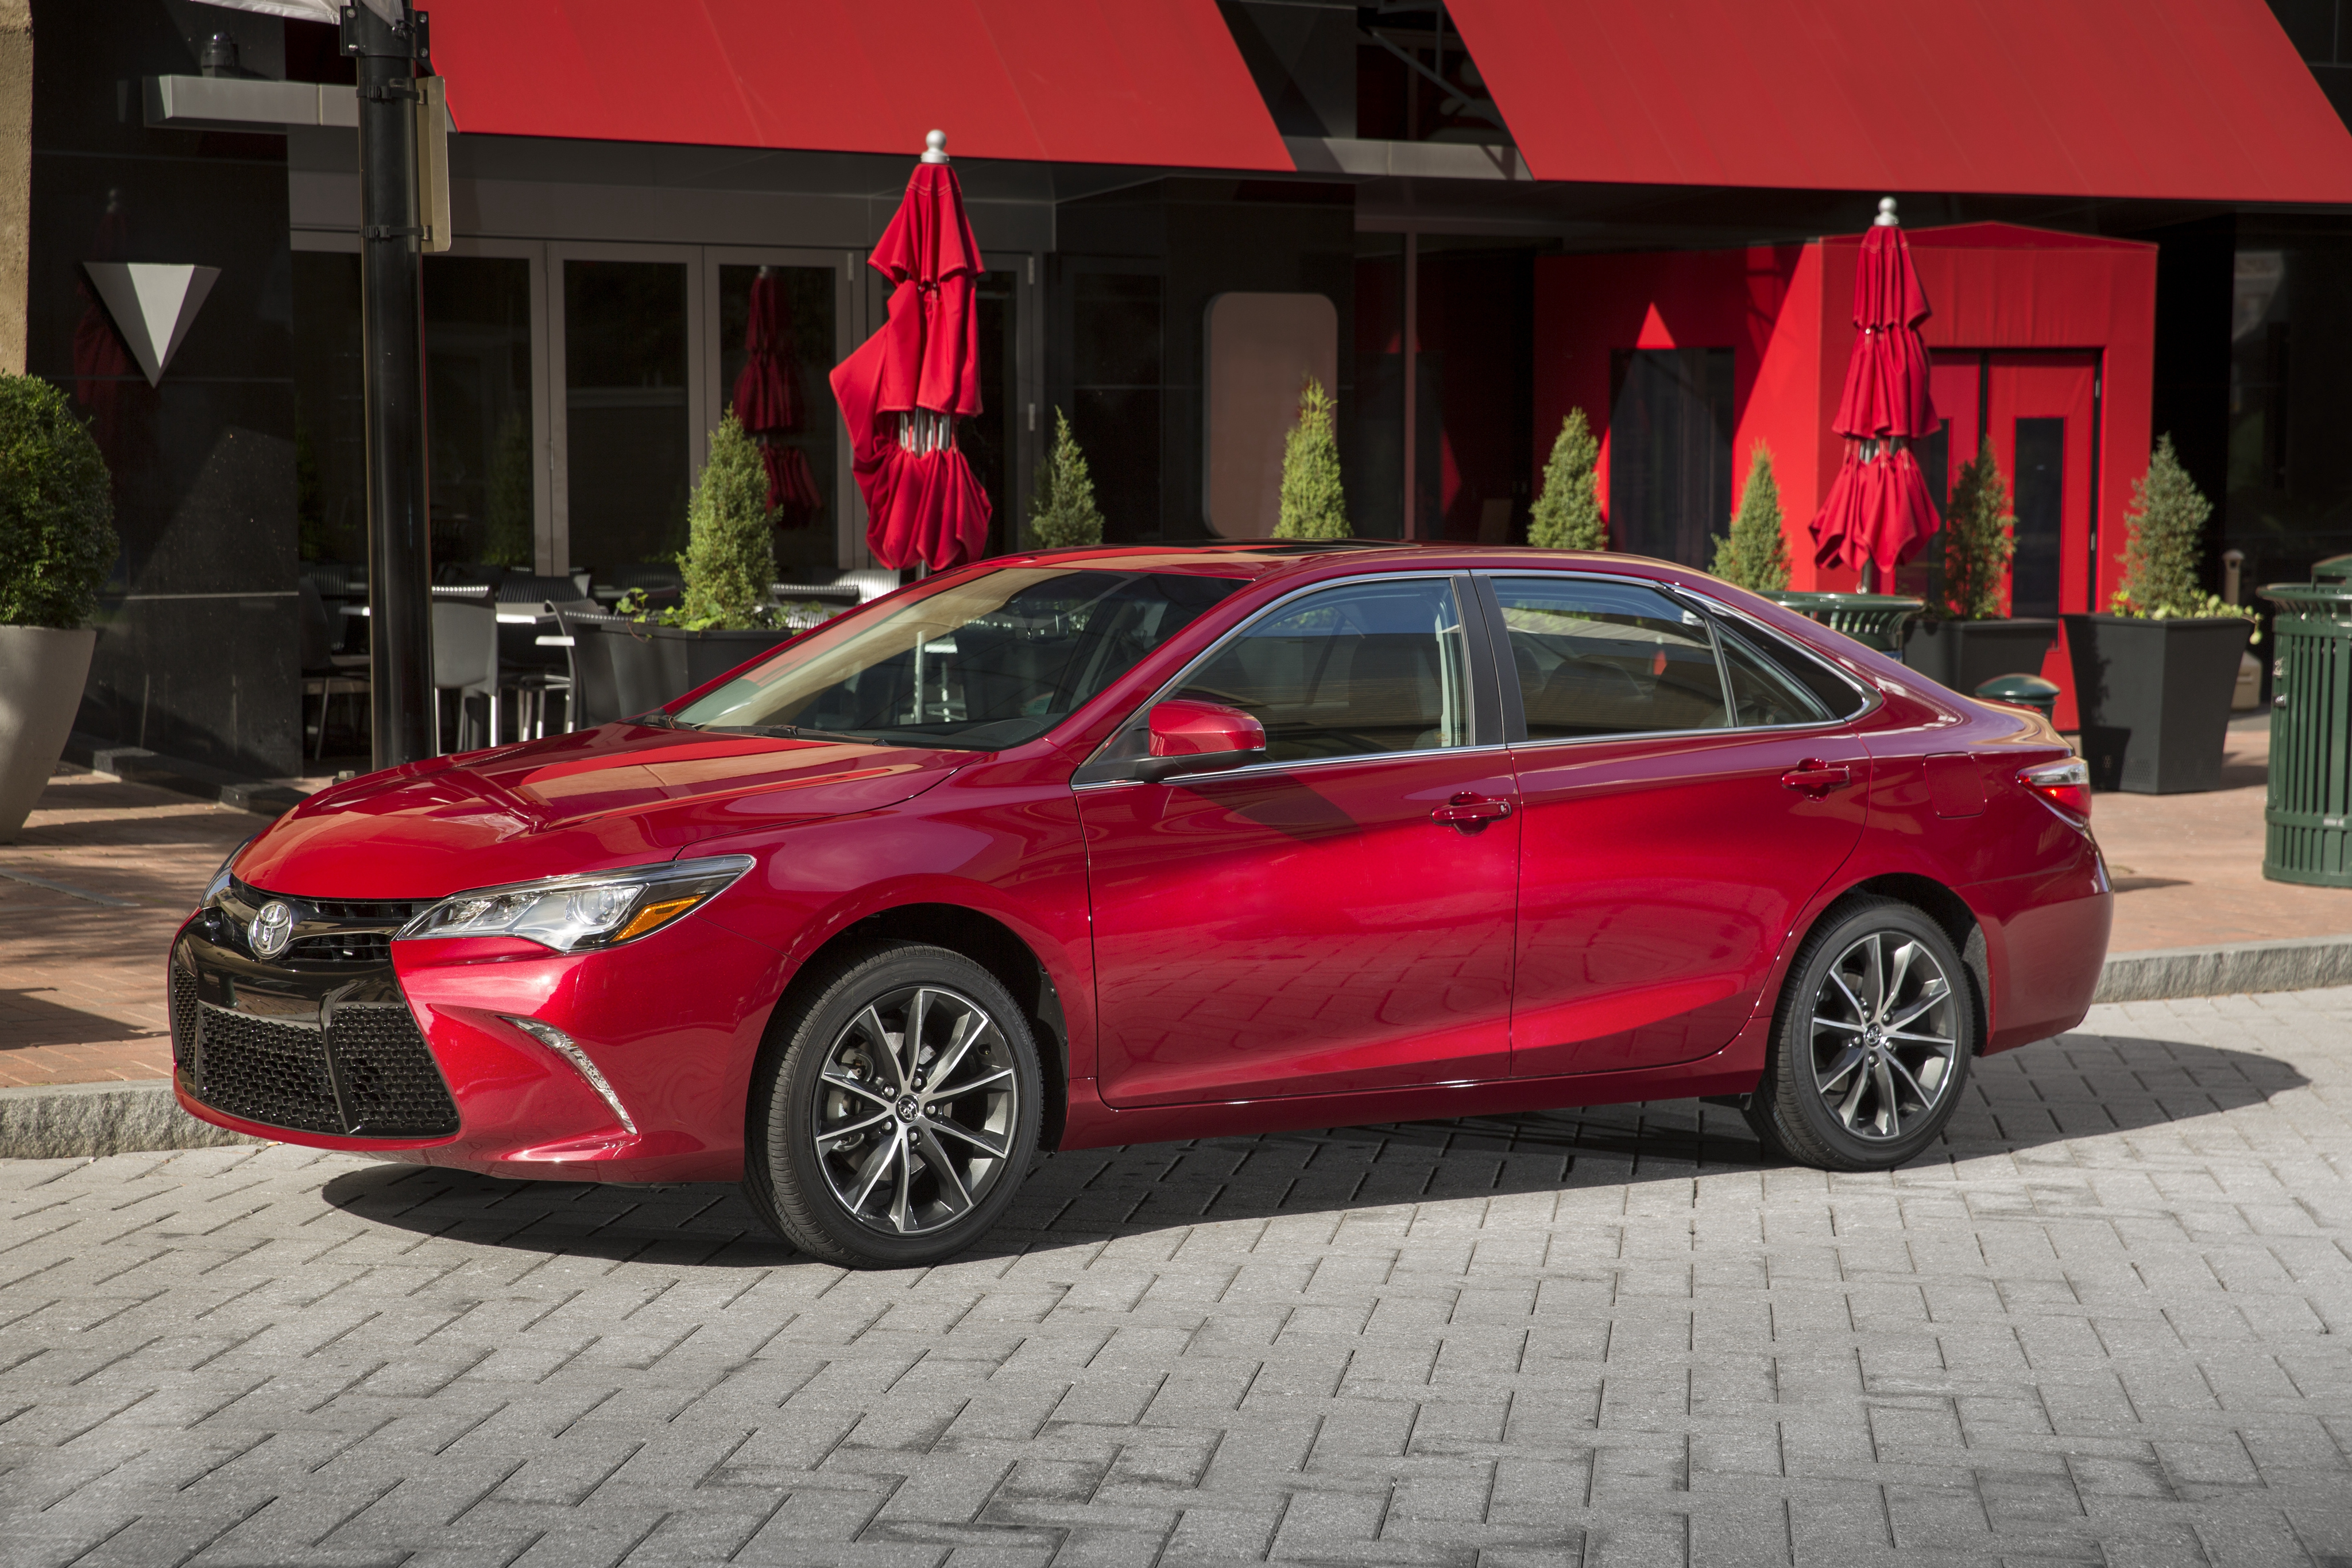 Toyota Camry Wallpaper For Laptop